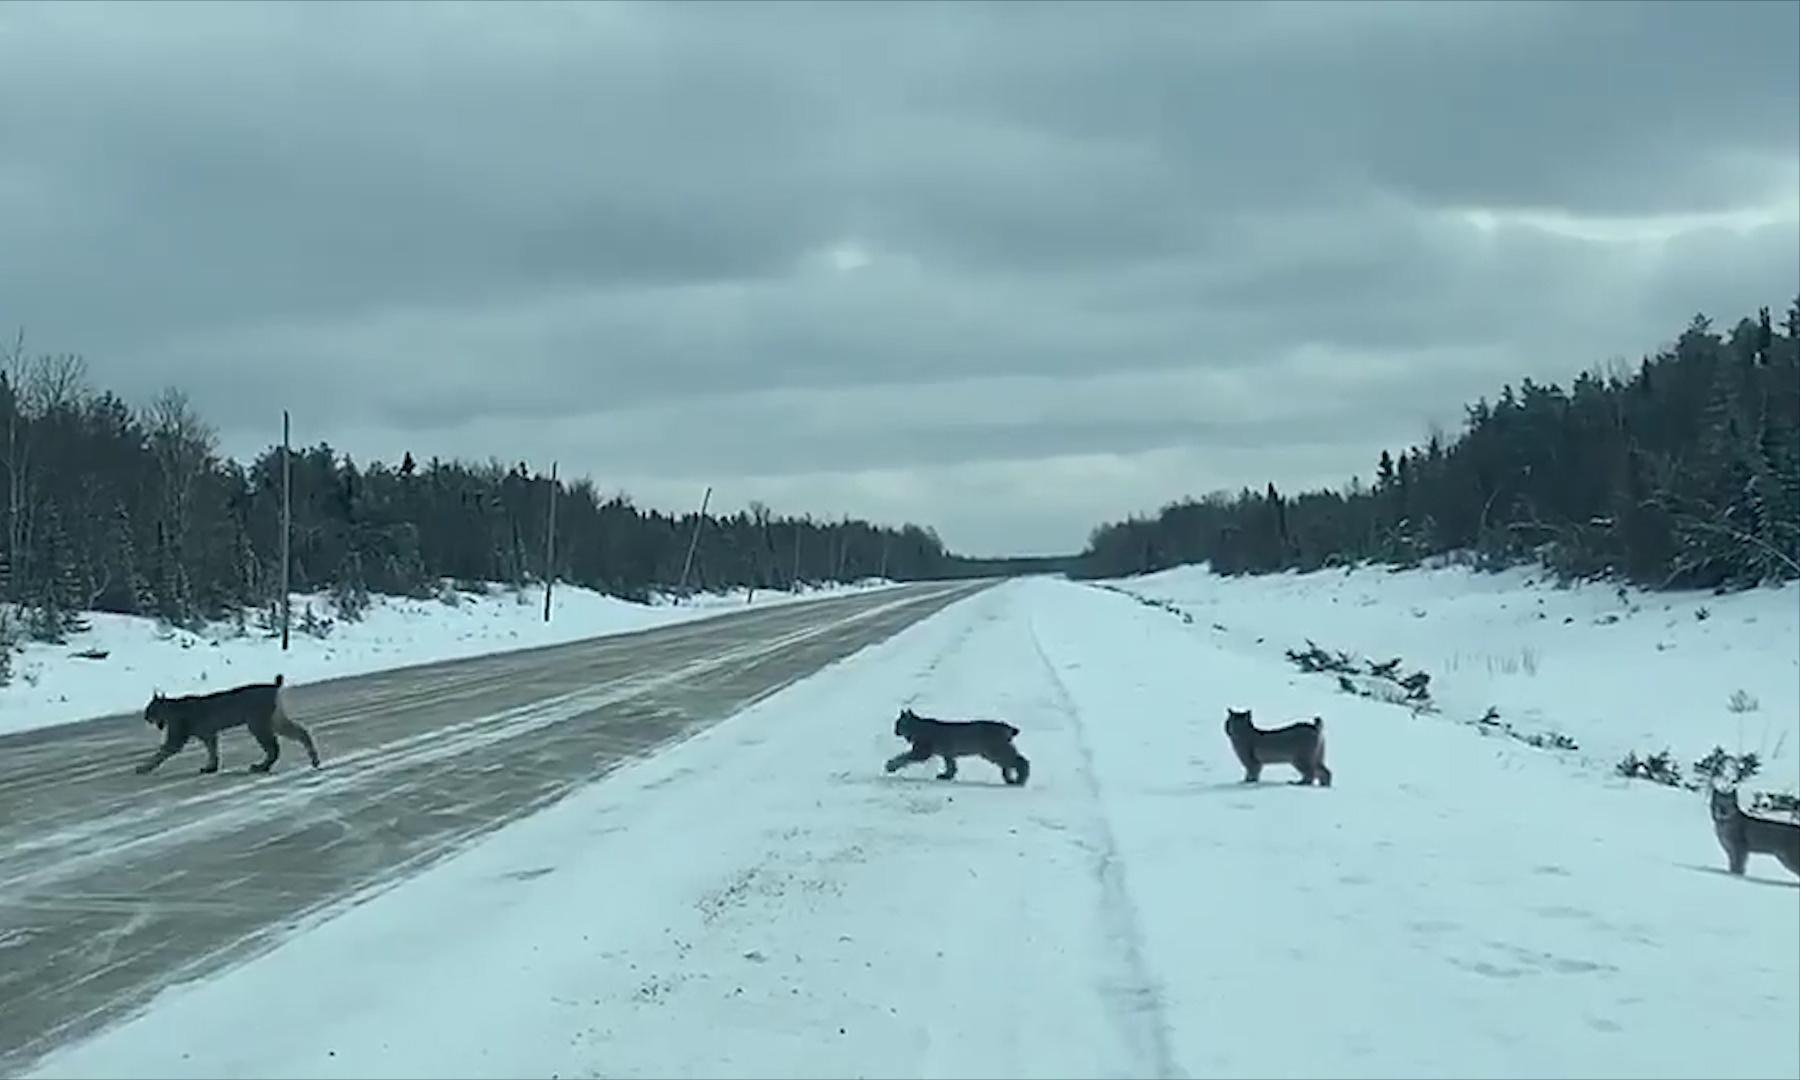 Canada driver captures rare sighting of mother lynx and her kittens